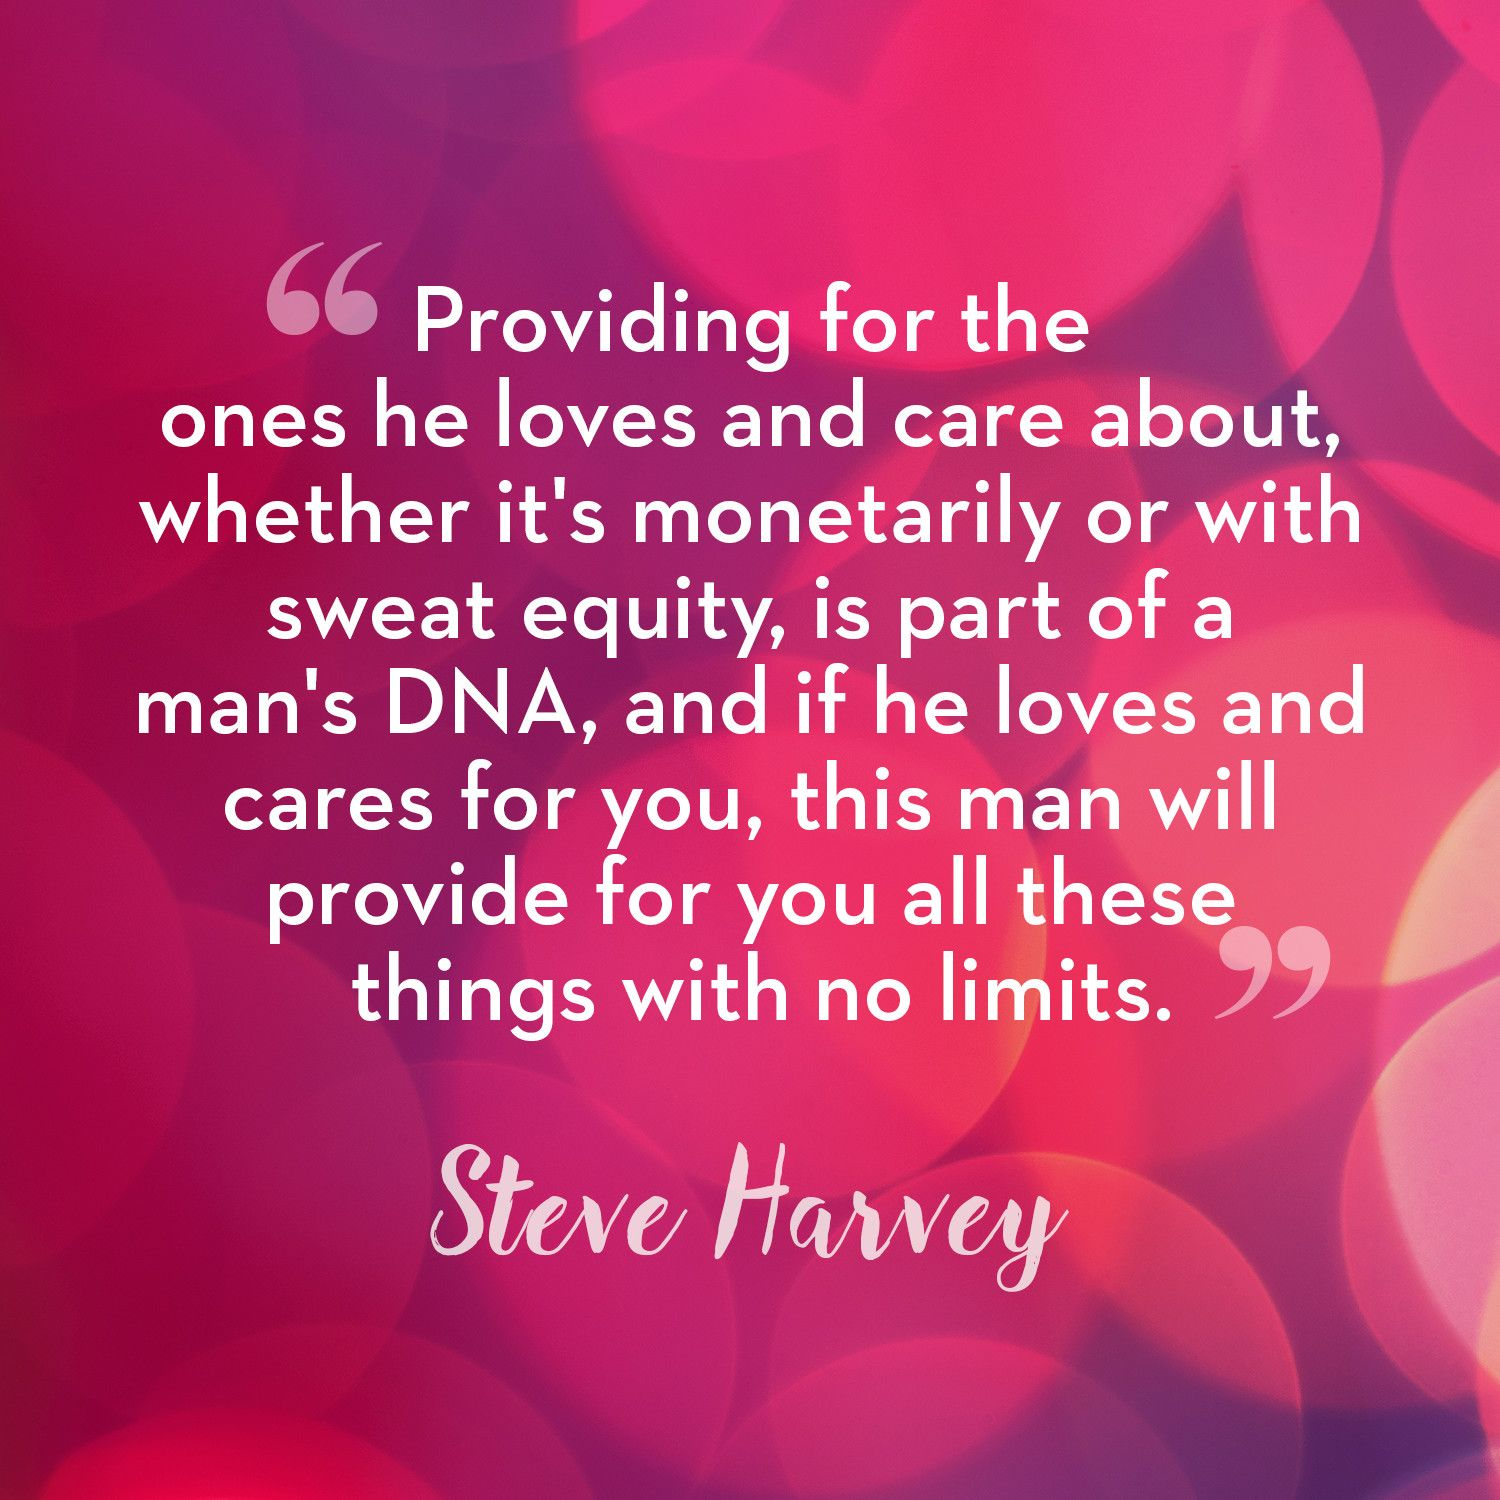 Quotes For Relationships 50 Best Relationship Quotes From Steve Harvey  Steve Harvey